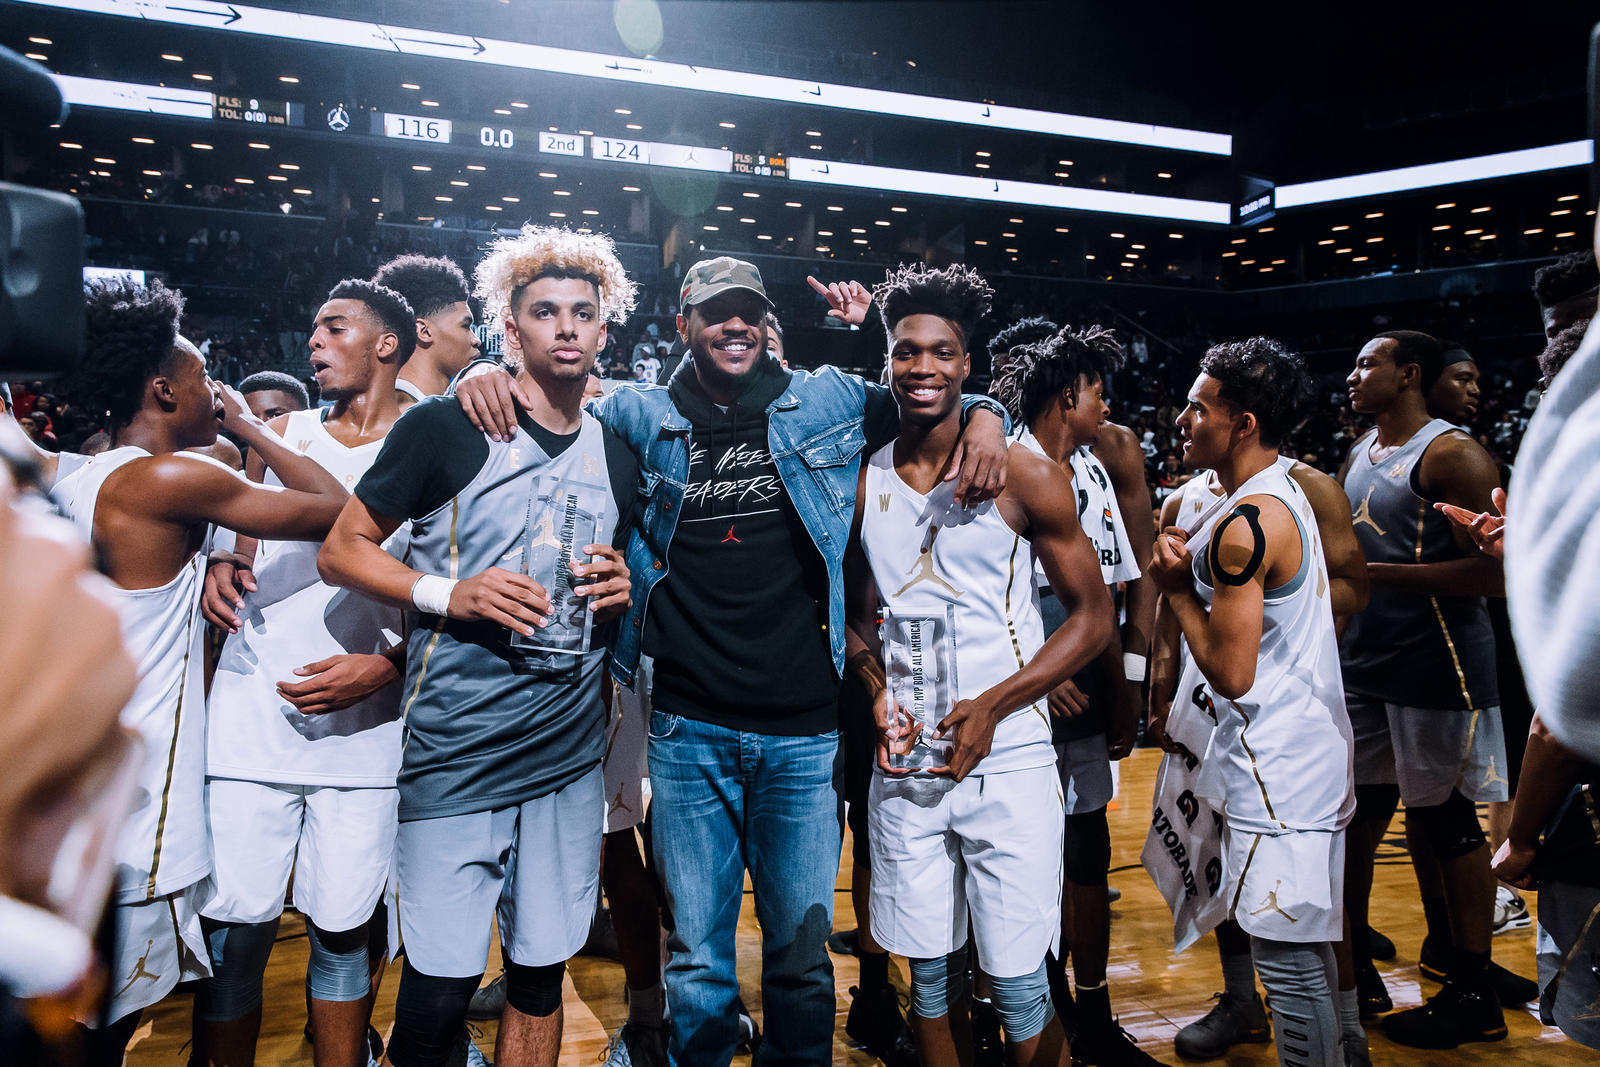 2017 JORDAN BRAND CLASSIC HOSTS NEXT GENERATION OF ELITE TALENT  11